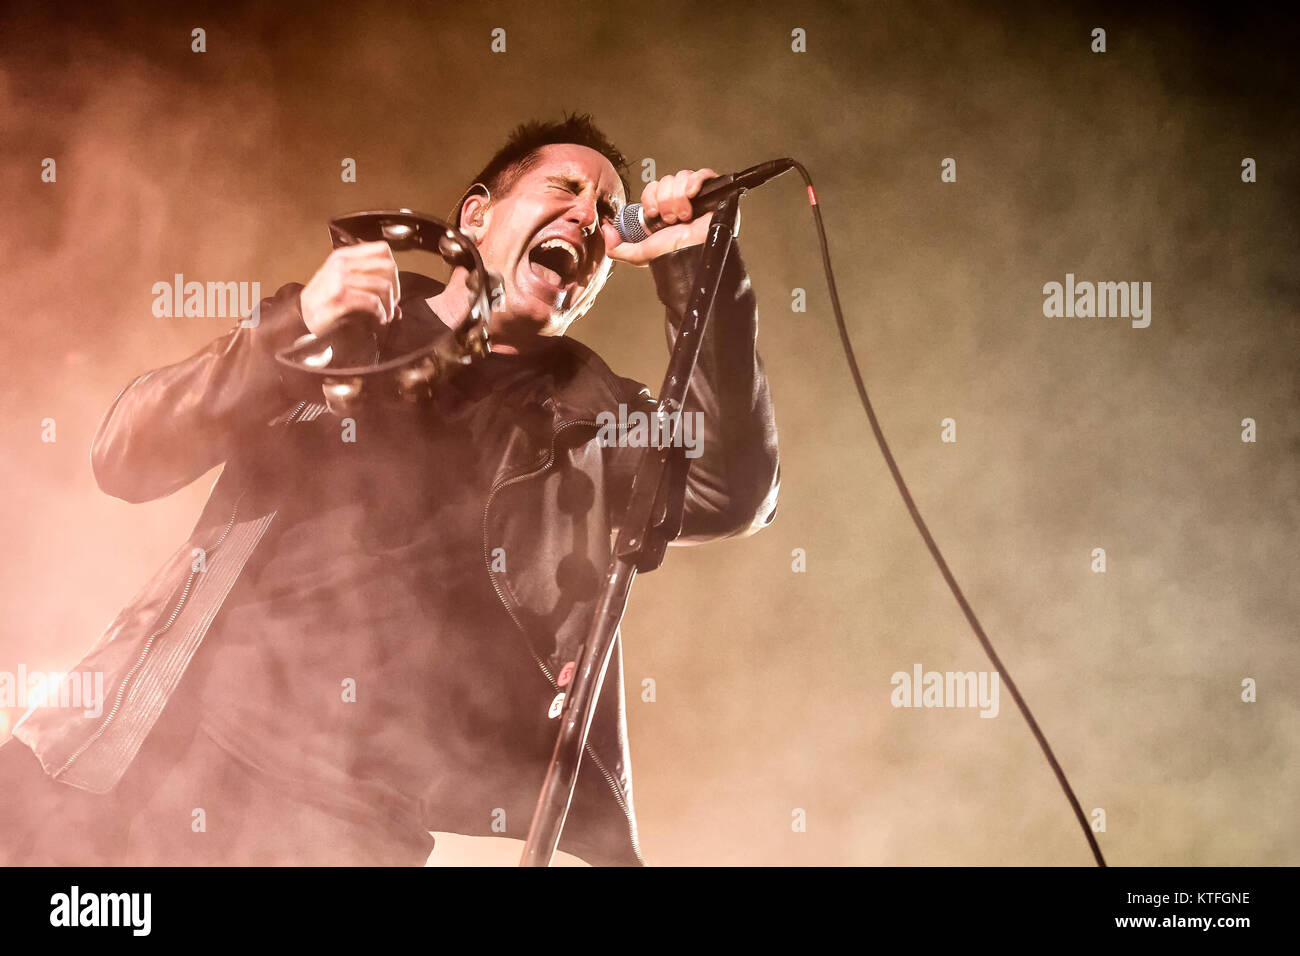 The American industrial rock band Nine Inch Nails performs a live concert at Oslo Spektrum. Here vocalist and songwriter - Stock Image